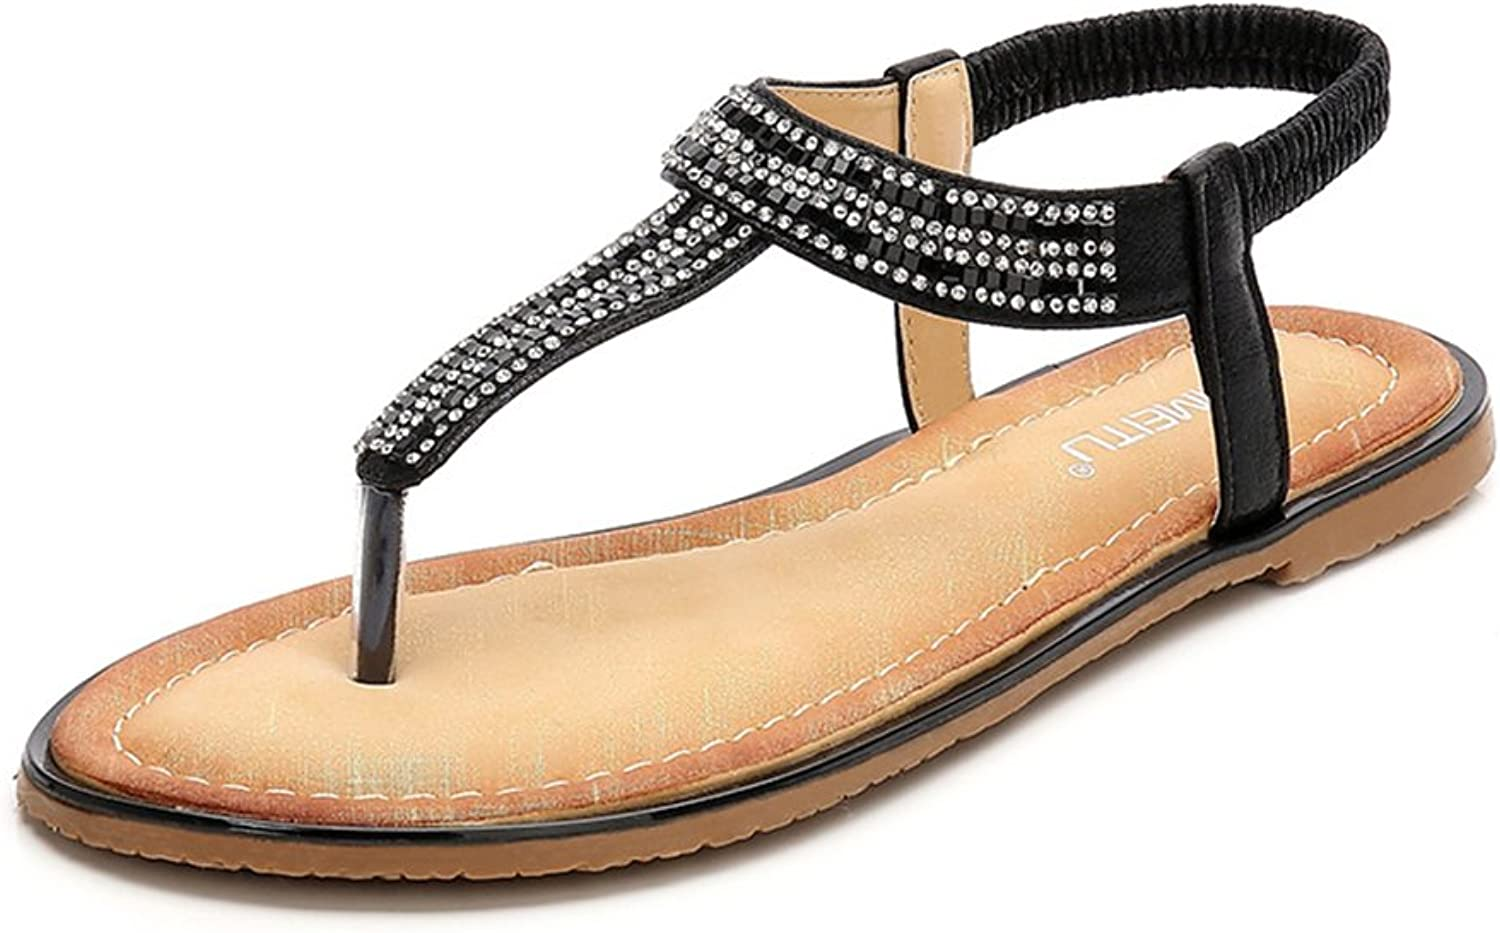 Baviue Womens Outdoor Jeweled Thong Sandles Leather Sandals